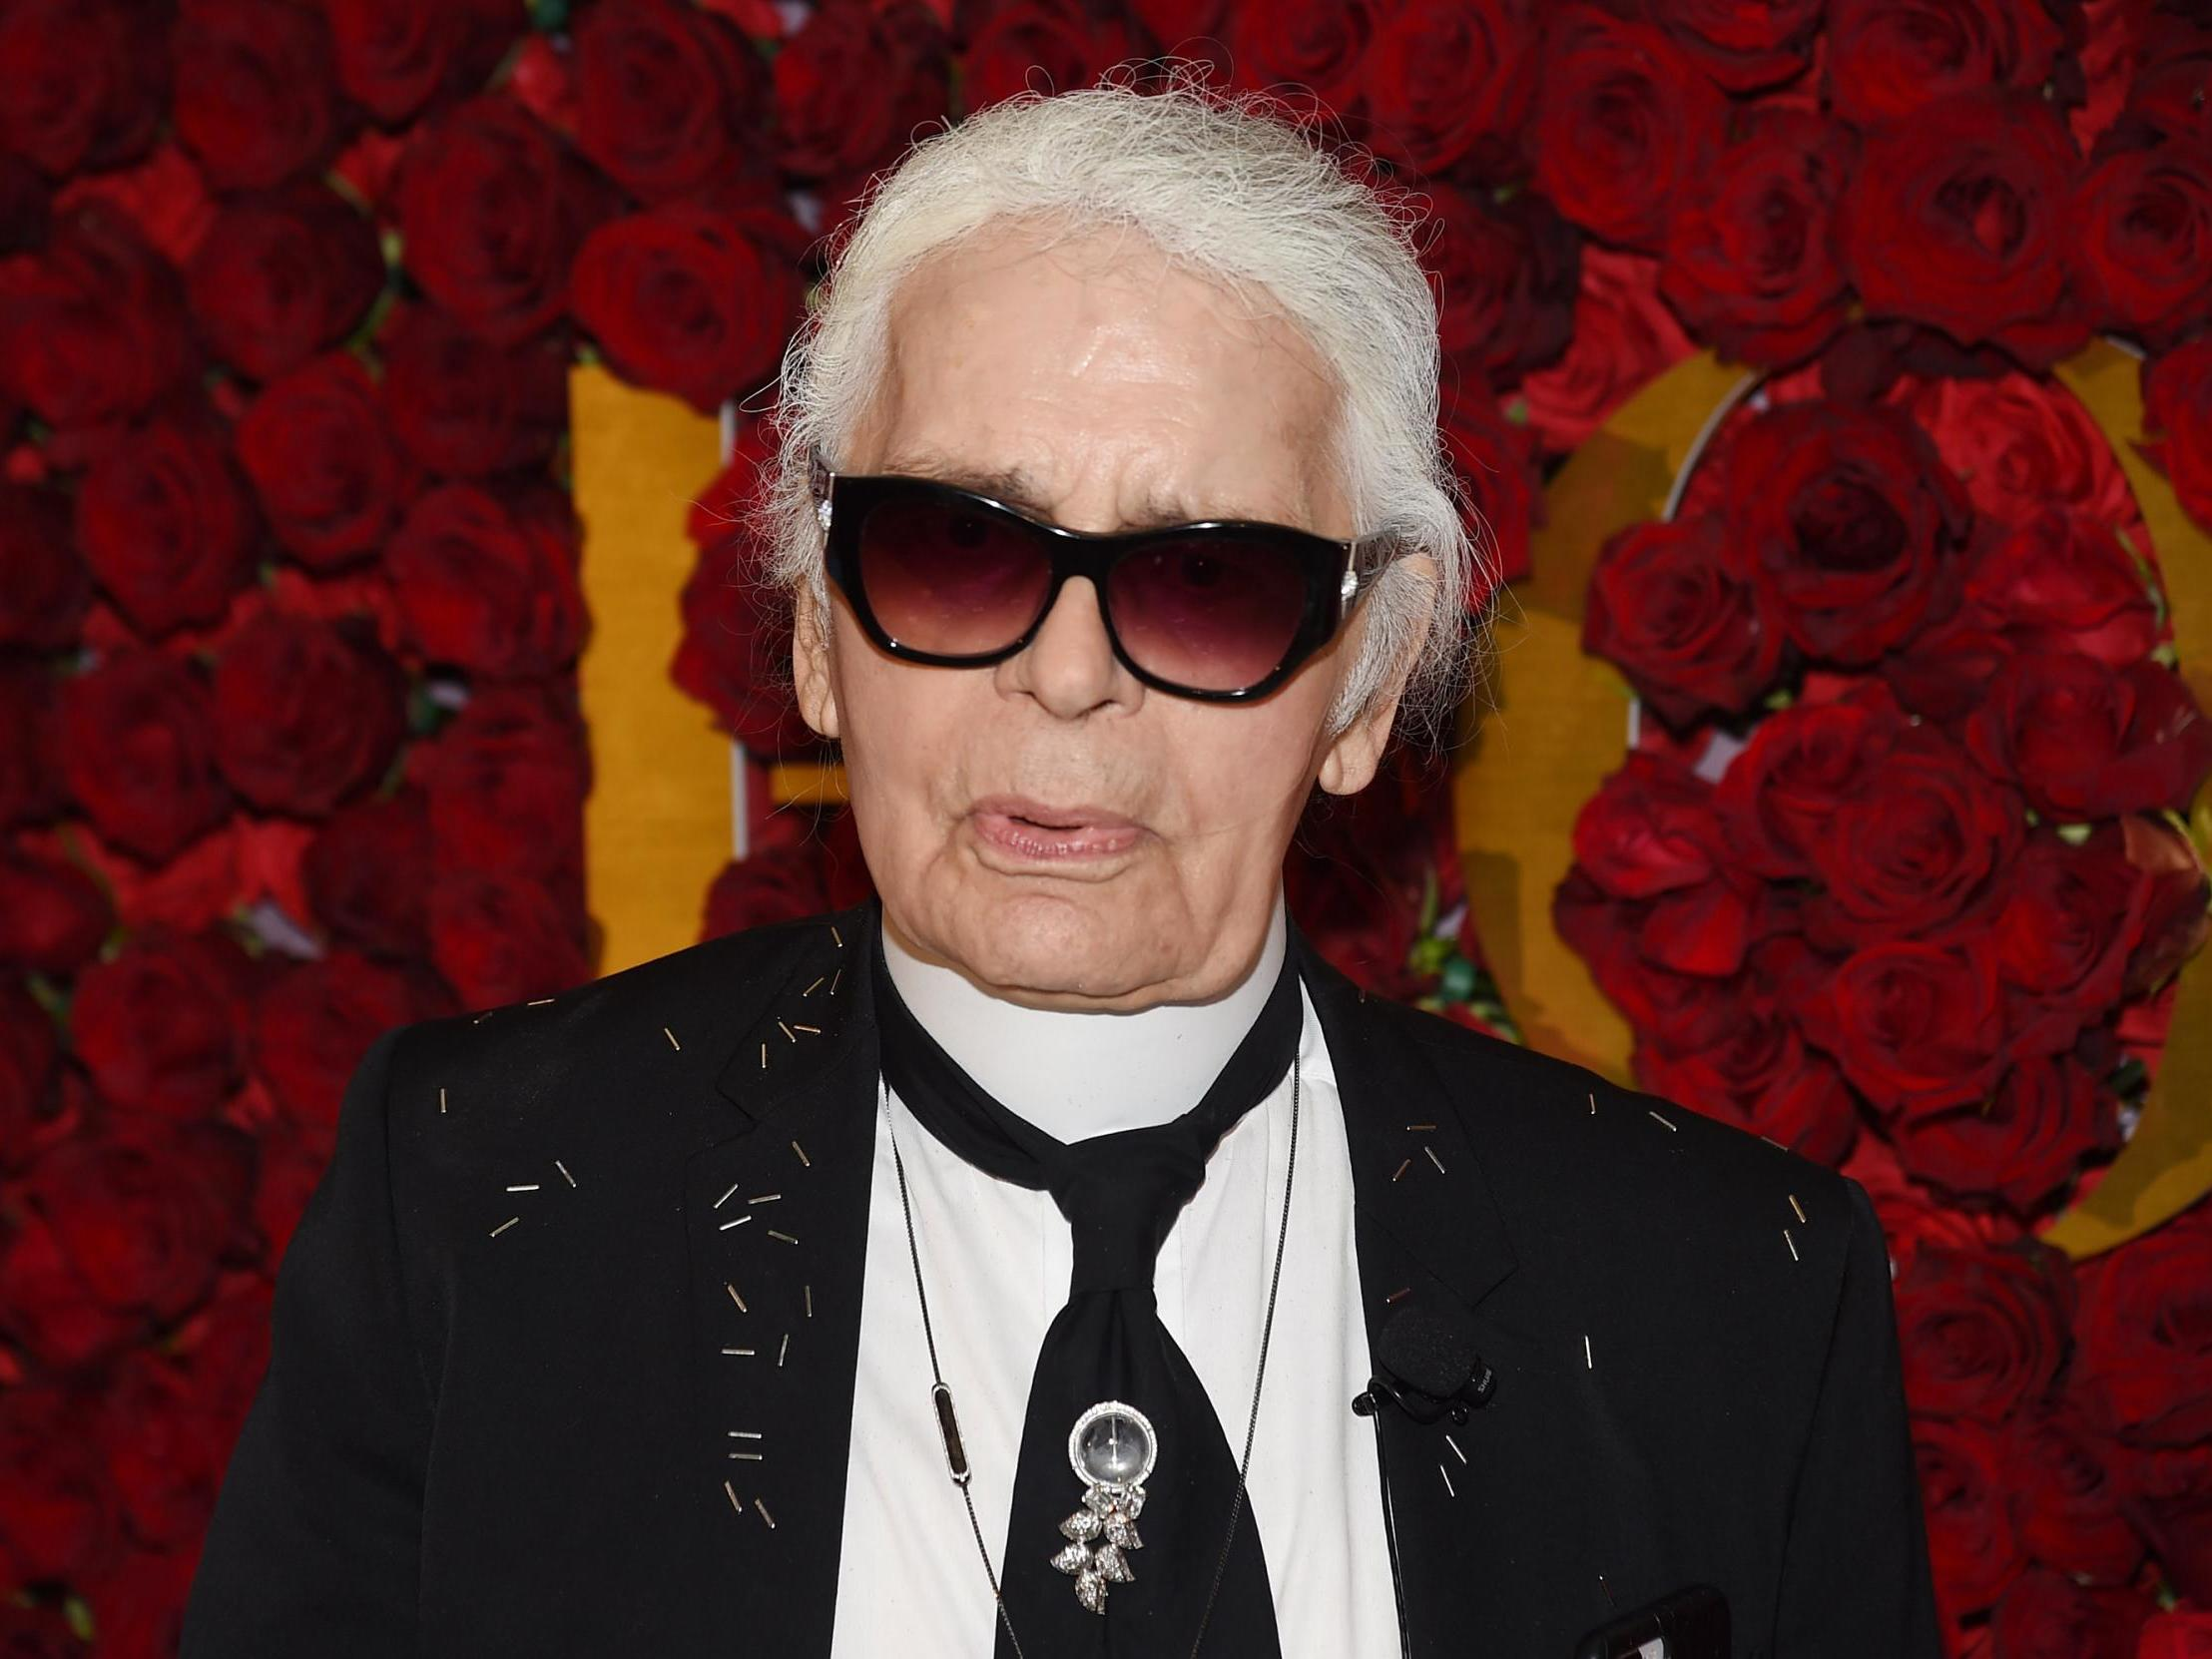 Karl Lagerfeld 'to be cremated' in line with the Chanel fashion designer's wishes